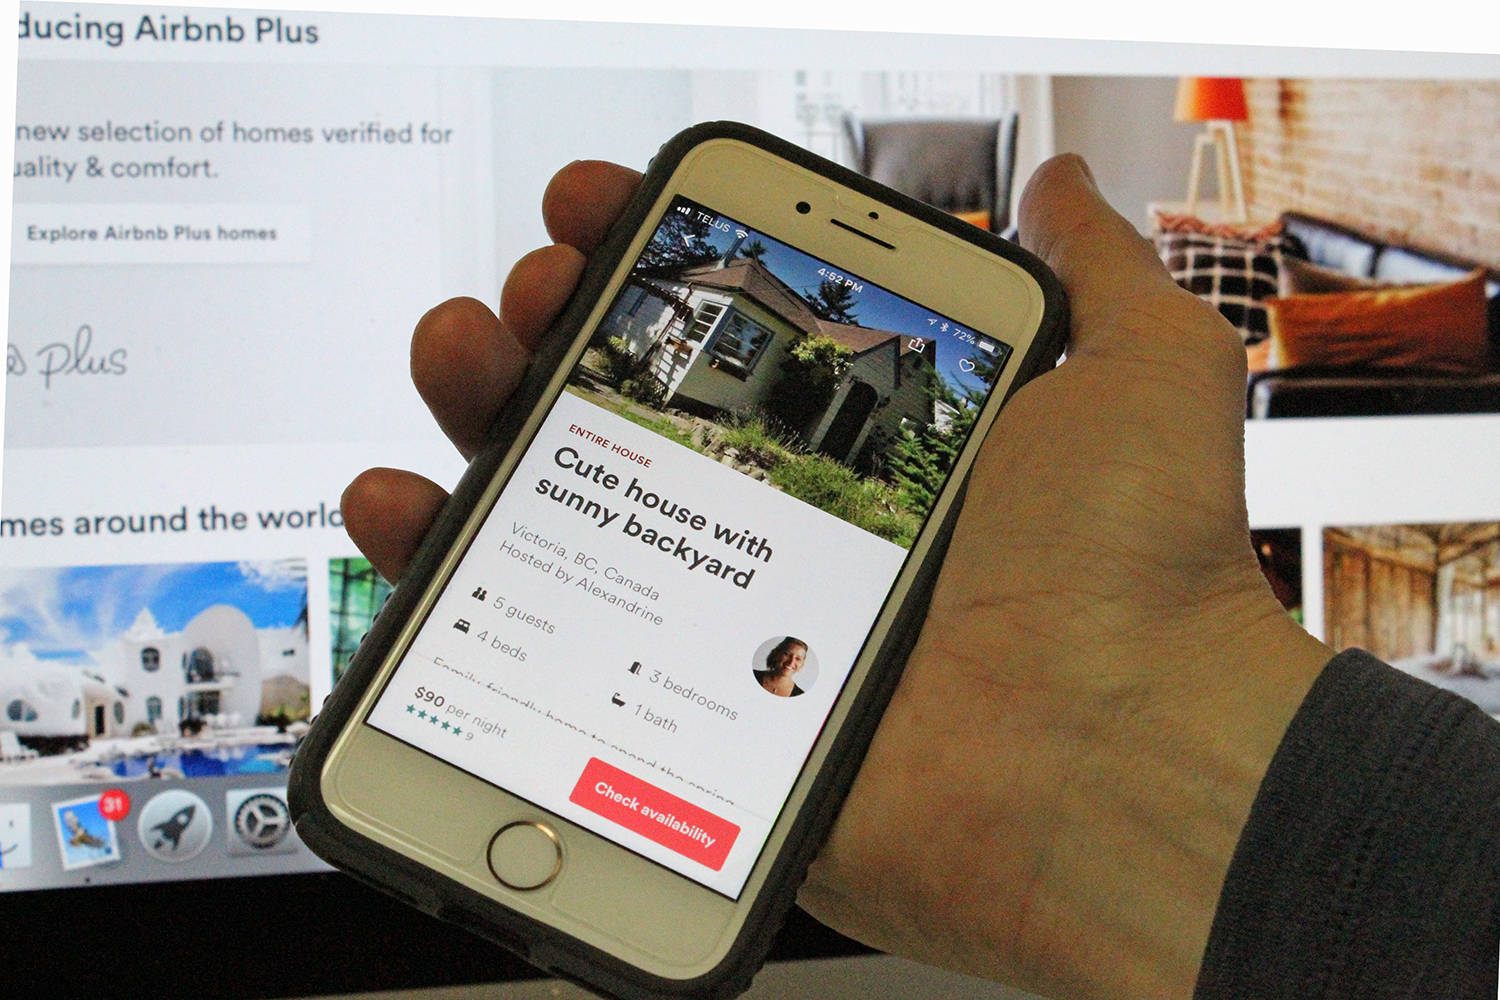 Kelowna city council will look at proposed rules to allow short-term rentals in secondary suites and carriage houses at its meeting on Monday. (Black Press)